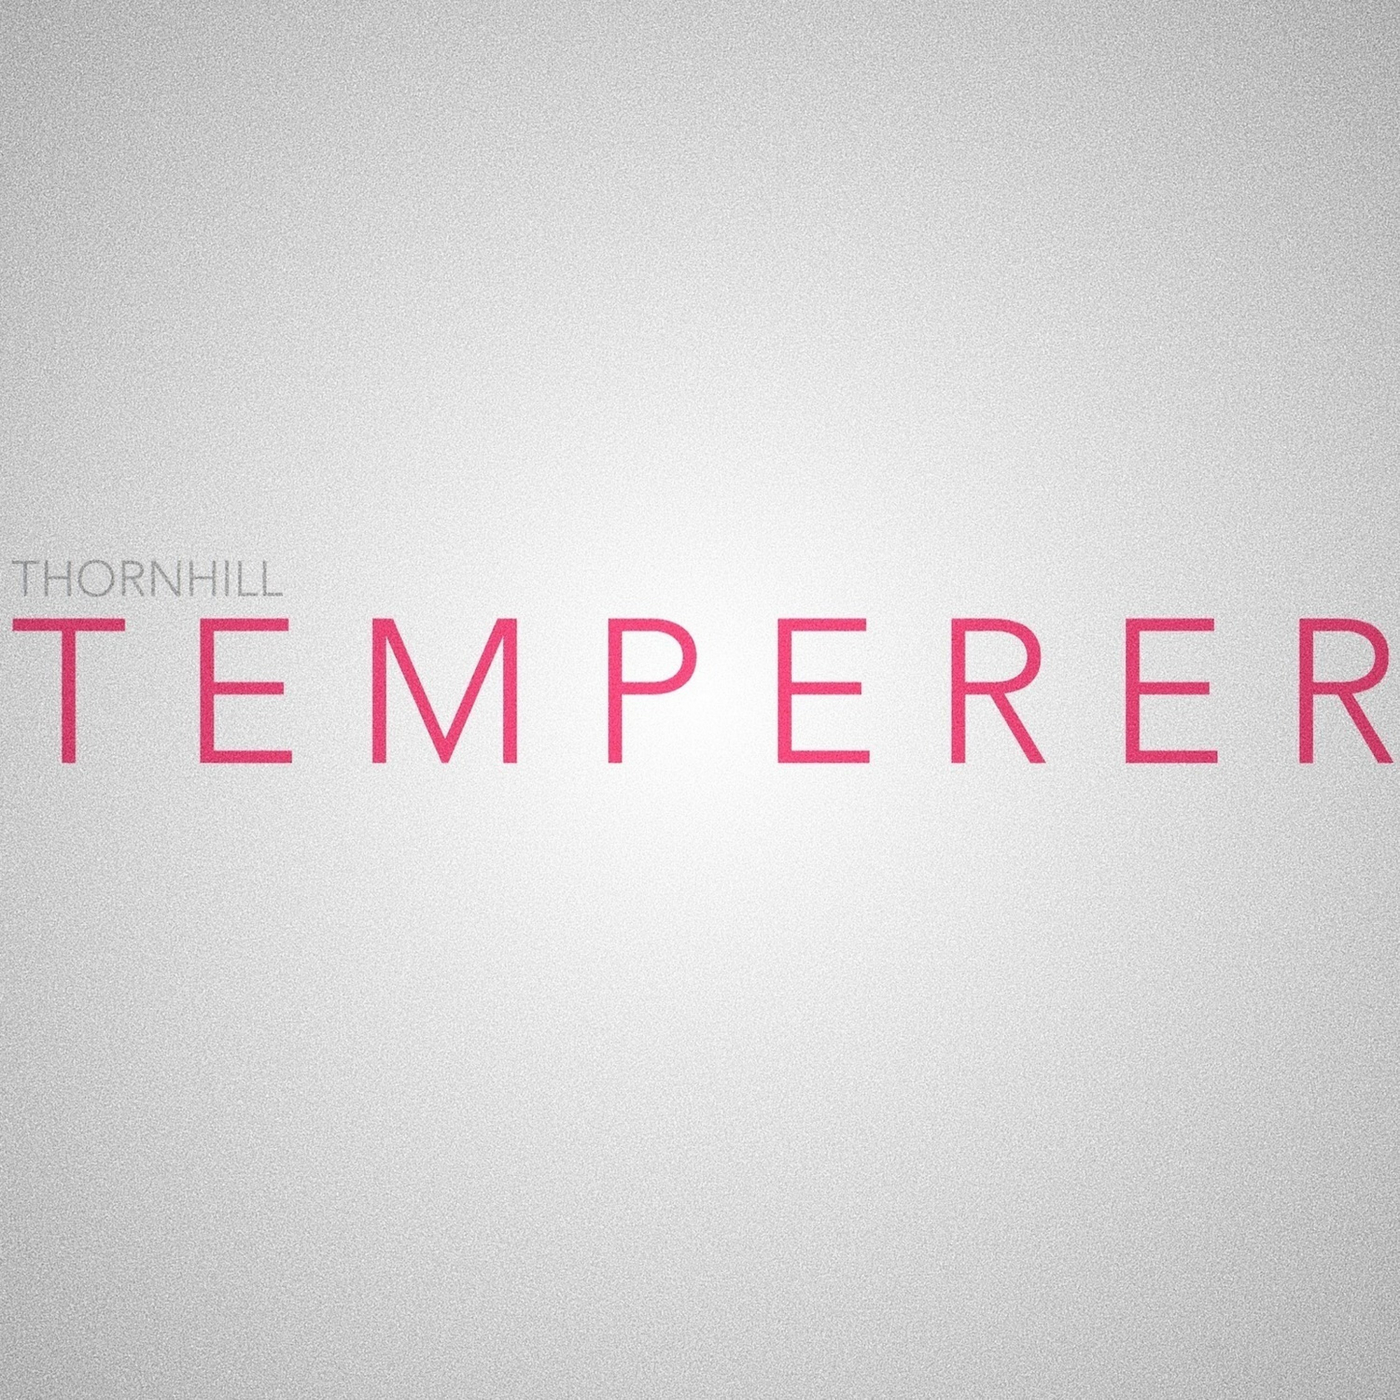 Thornhill - Temperer [single] (2017)